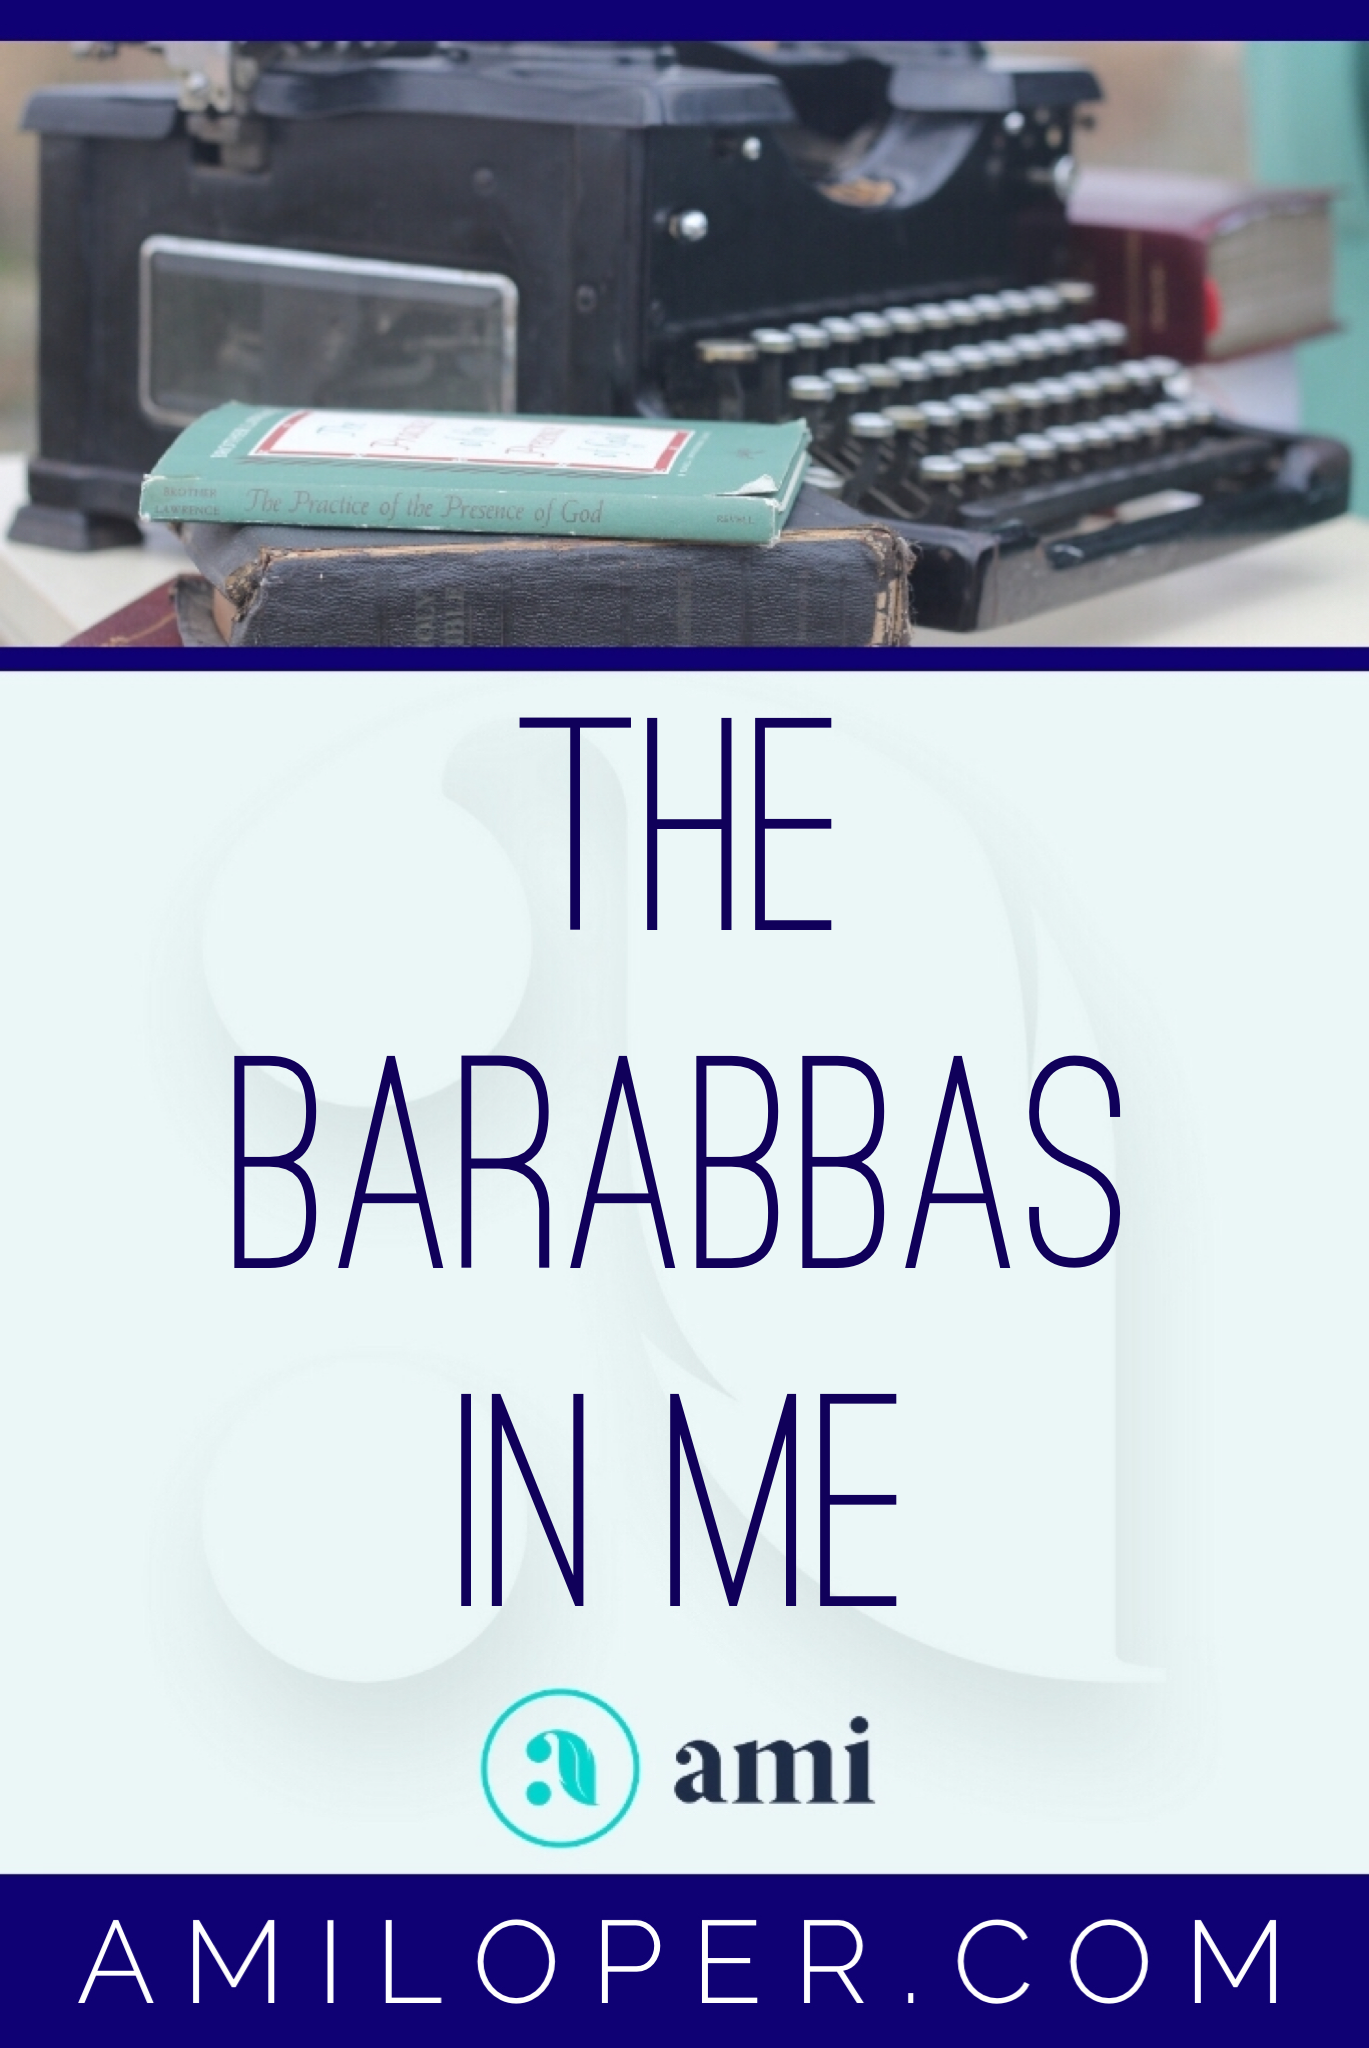 Barabbas. He's kind of a vague person in history. All we really know is that he was released from prison, chosen to be freed by the people while Jesus was crucified. But there is a Barabbas in me, in all of us... #EasterSunday #Resurrection #ChristianBlog